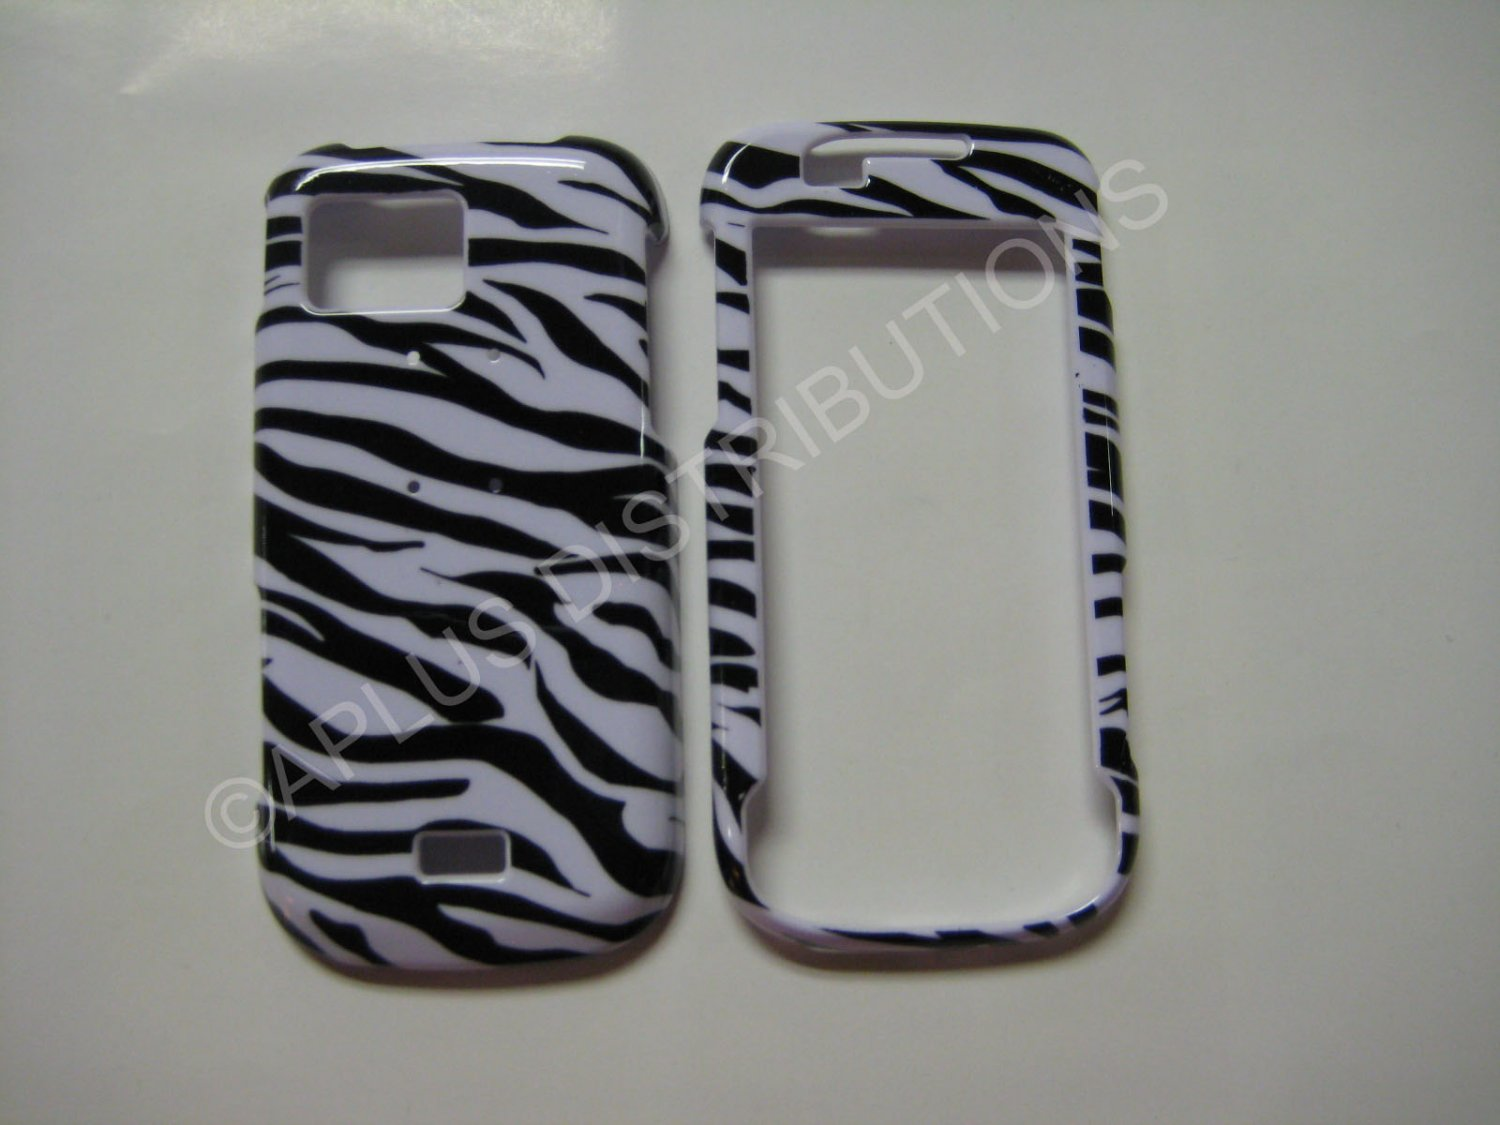 New Black Zebra Design Hard Protective Cover For Samsung Mythic A897 - (0001)